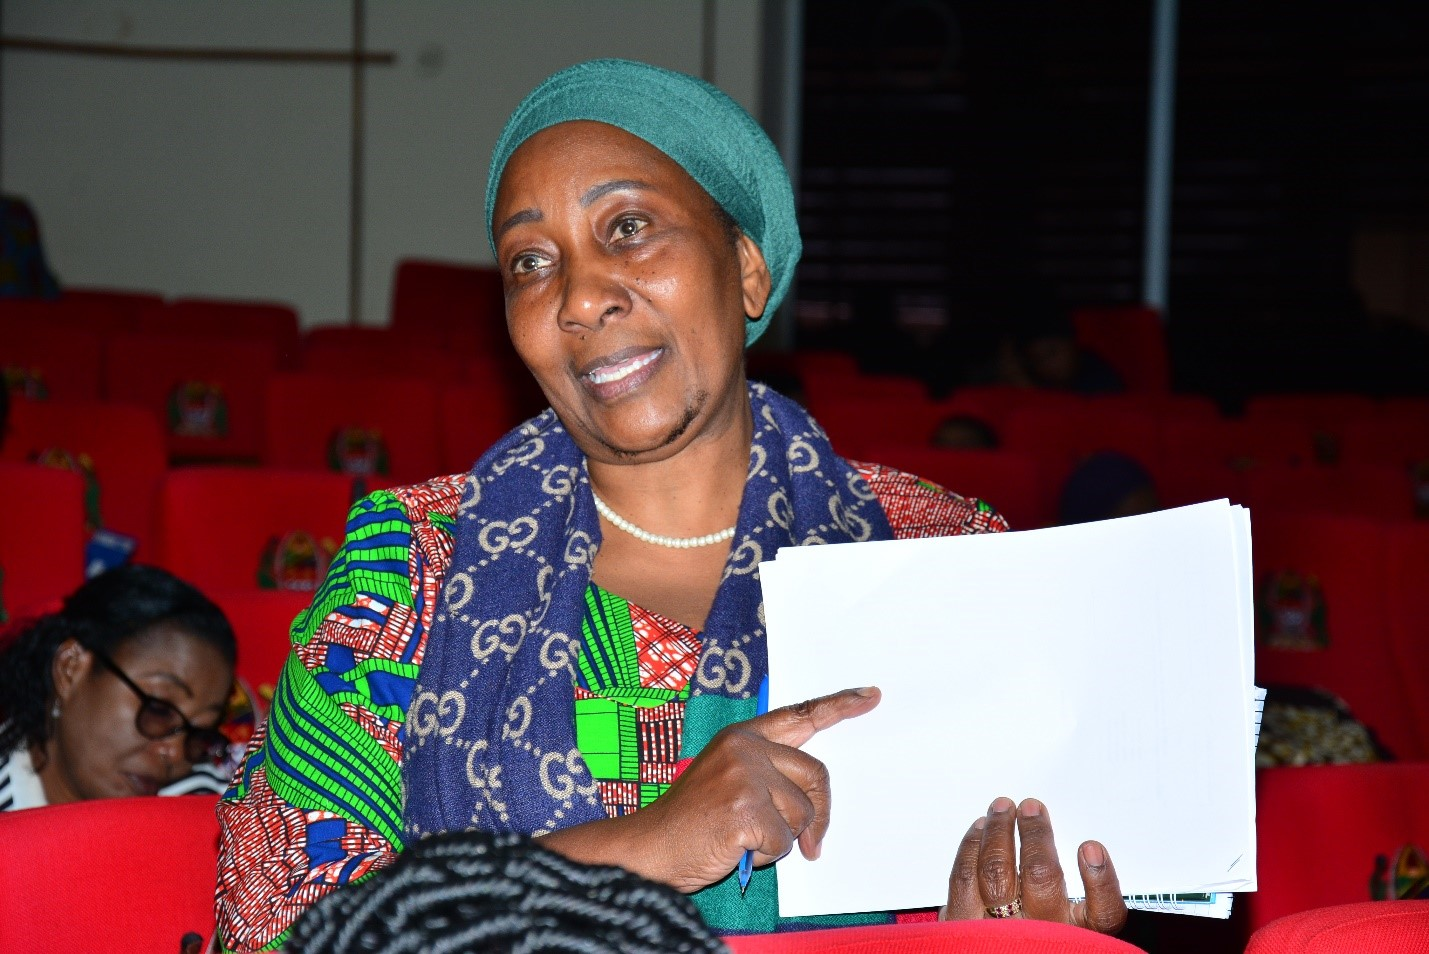 Partnerships with Women's Parliamentary Caucuses  Seek Transformative Changes on Gender Equality